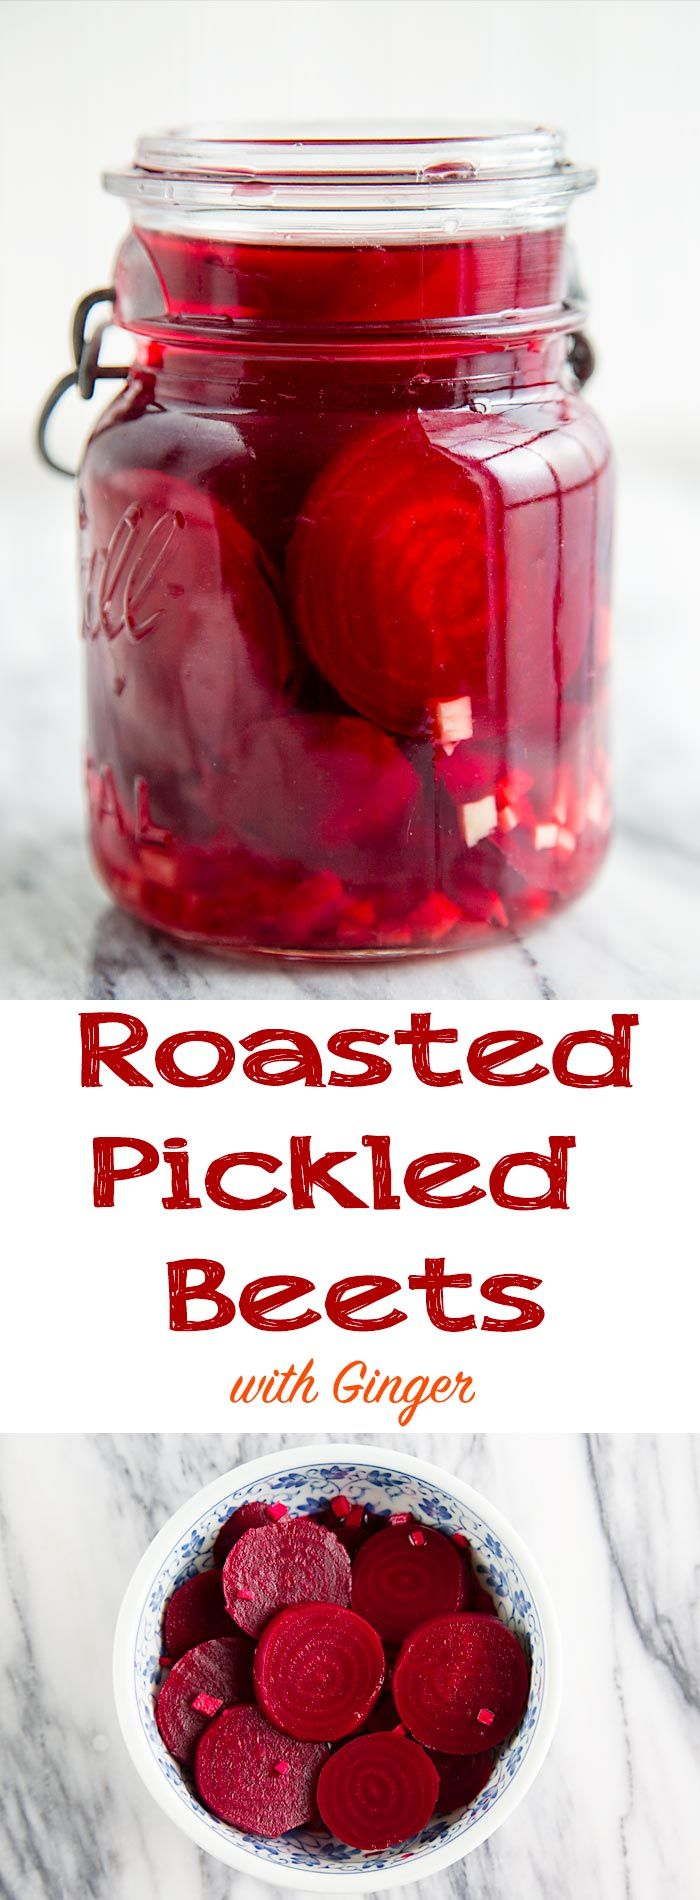 These roasted pickled beets provide a tangy accent to salads and sandwiches. A little fresh ginger root adds a subtle hint of spice.